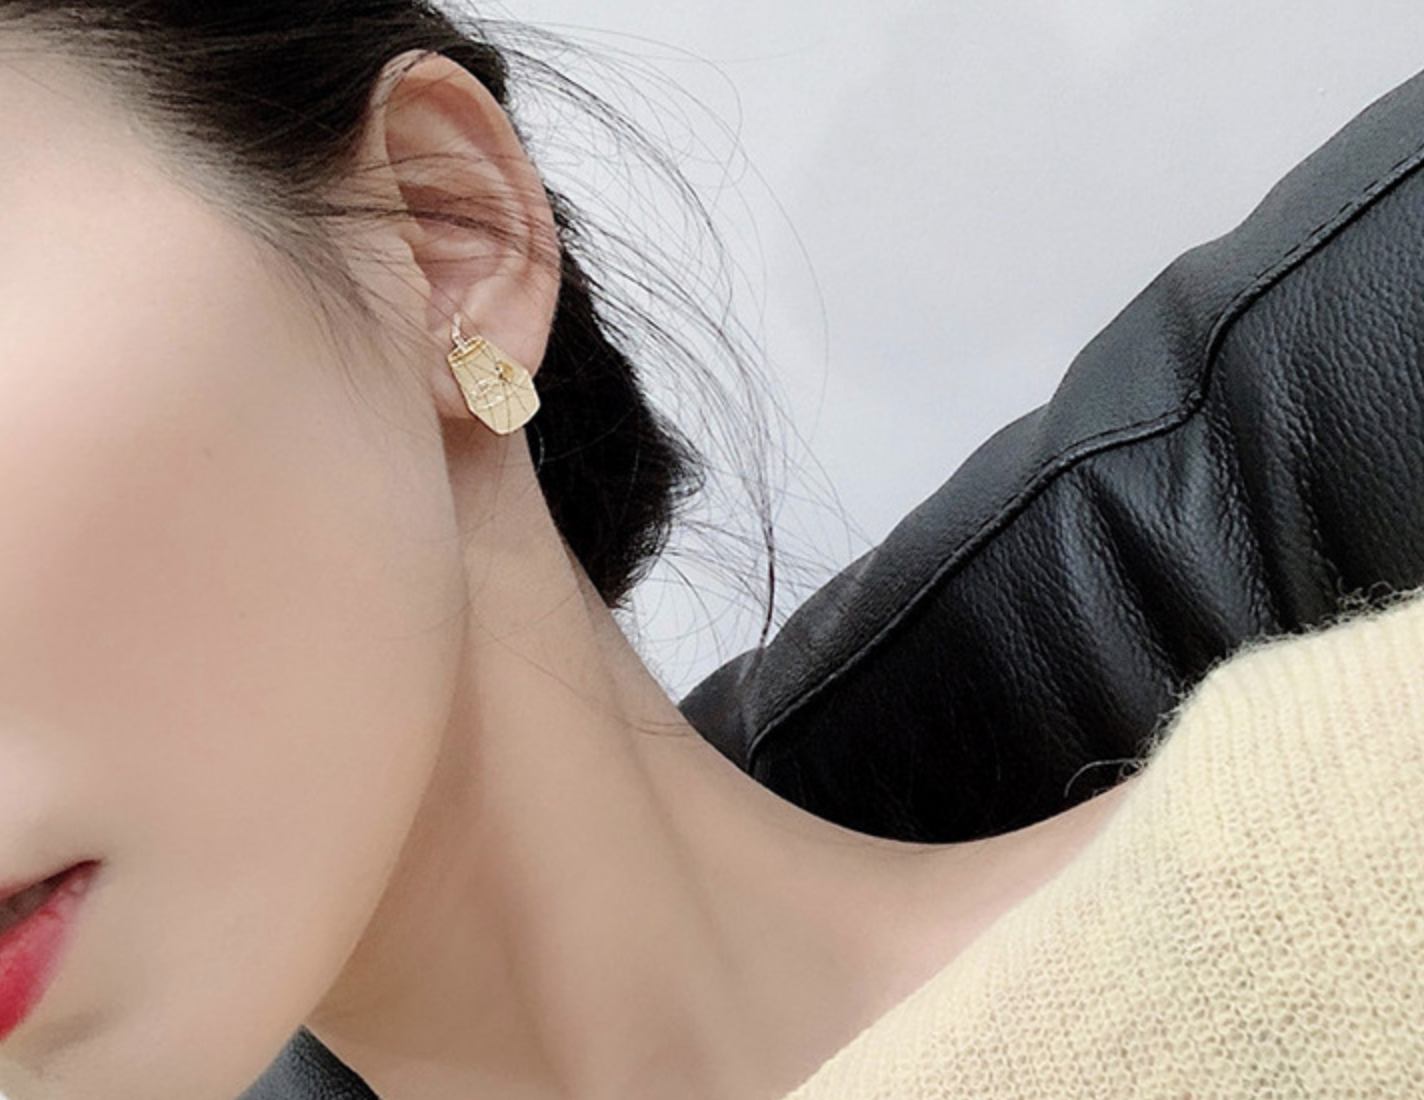 Banana and Milk Earring